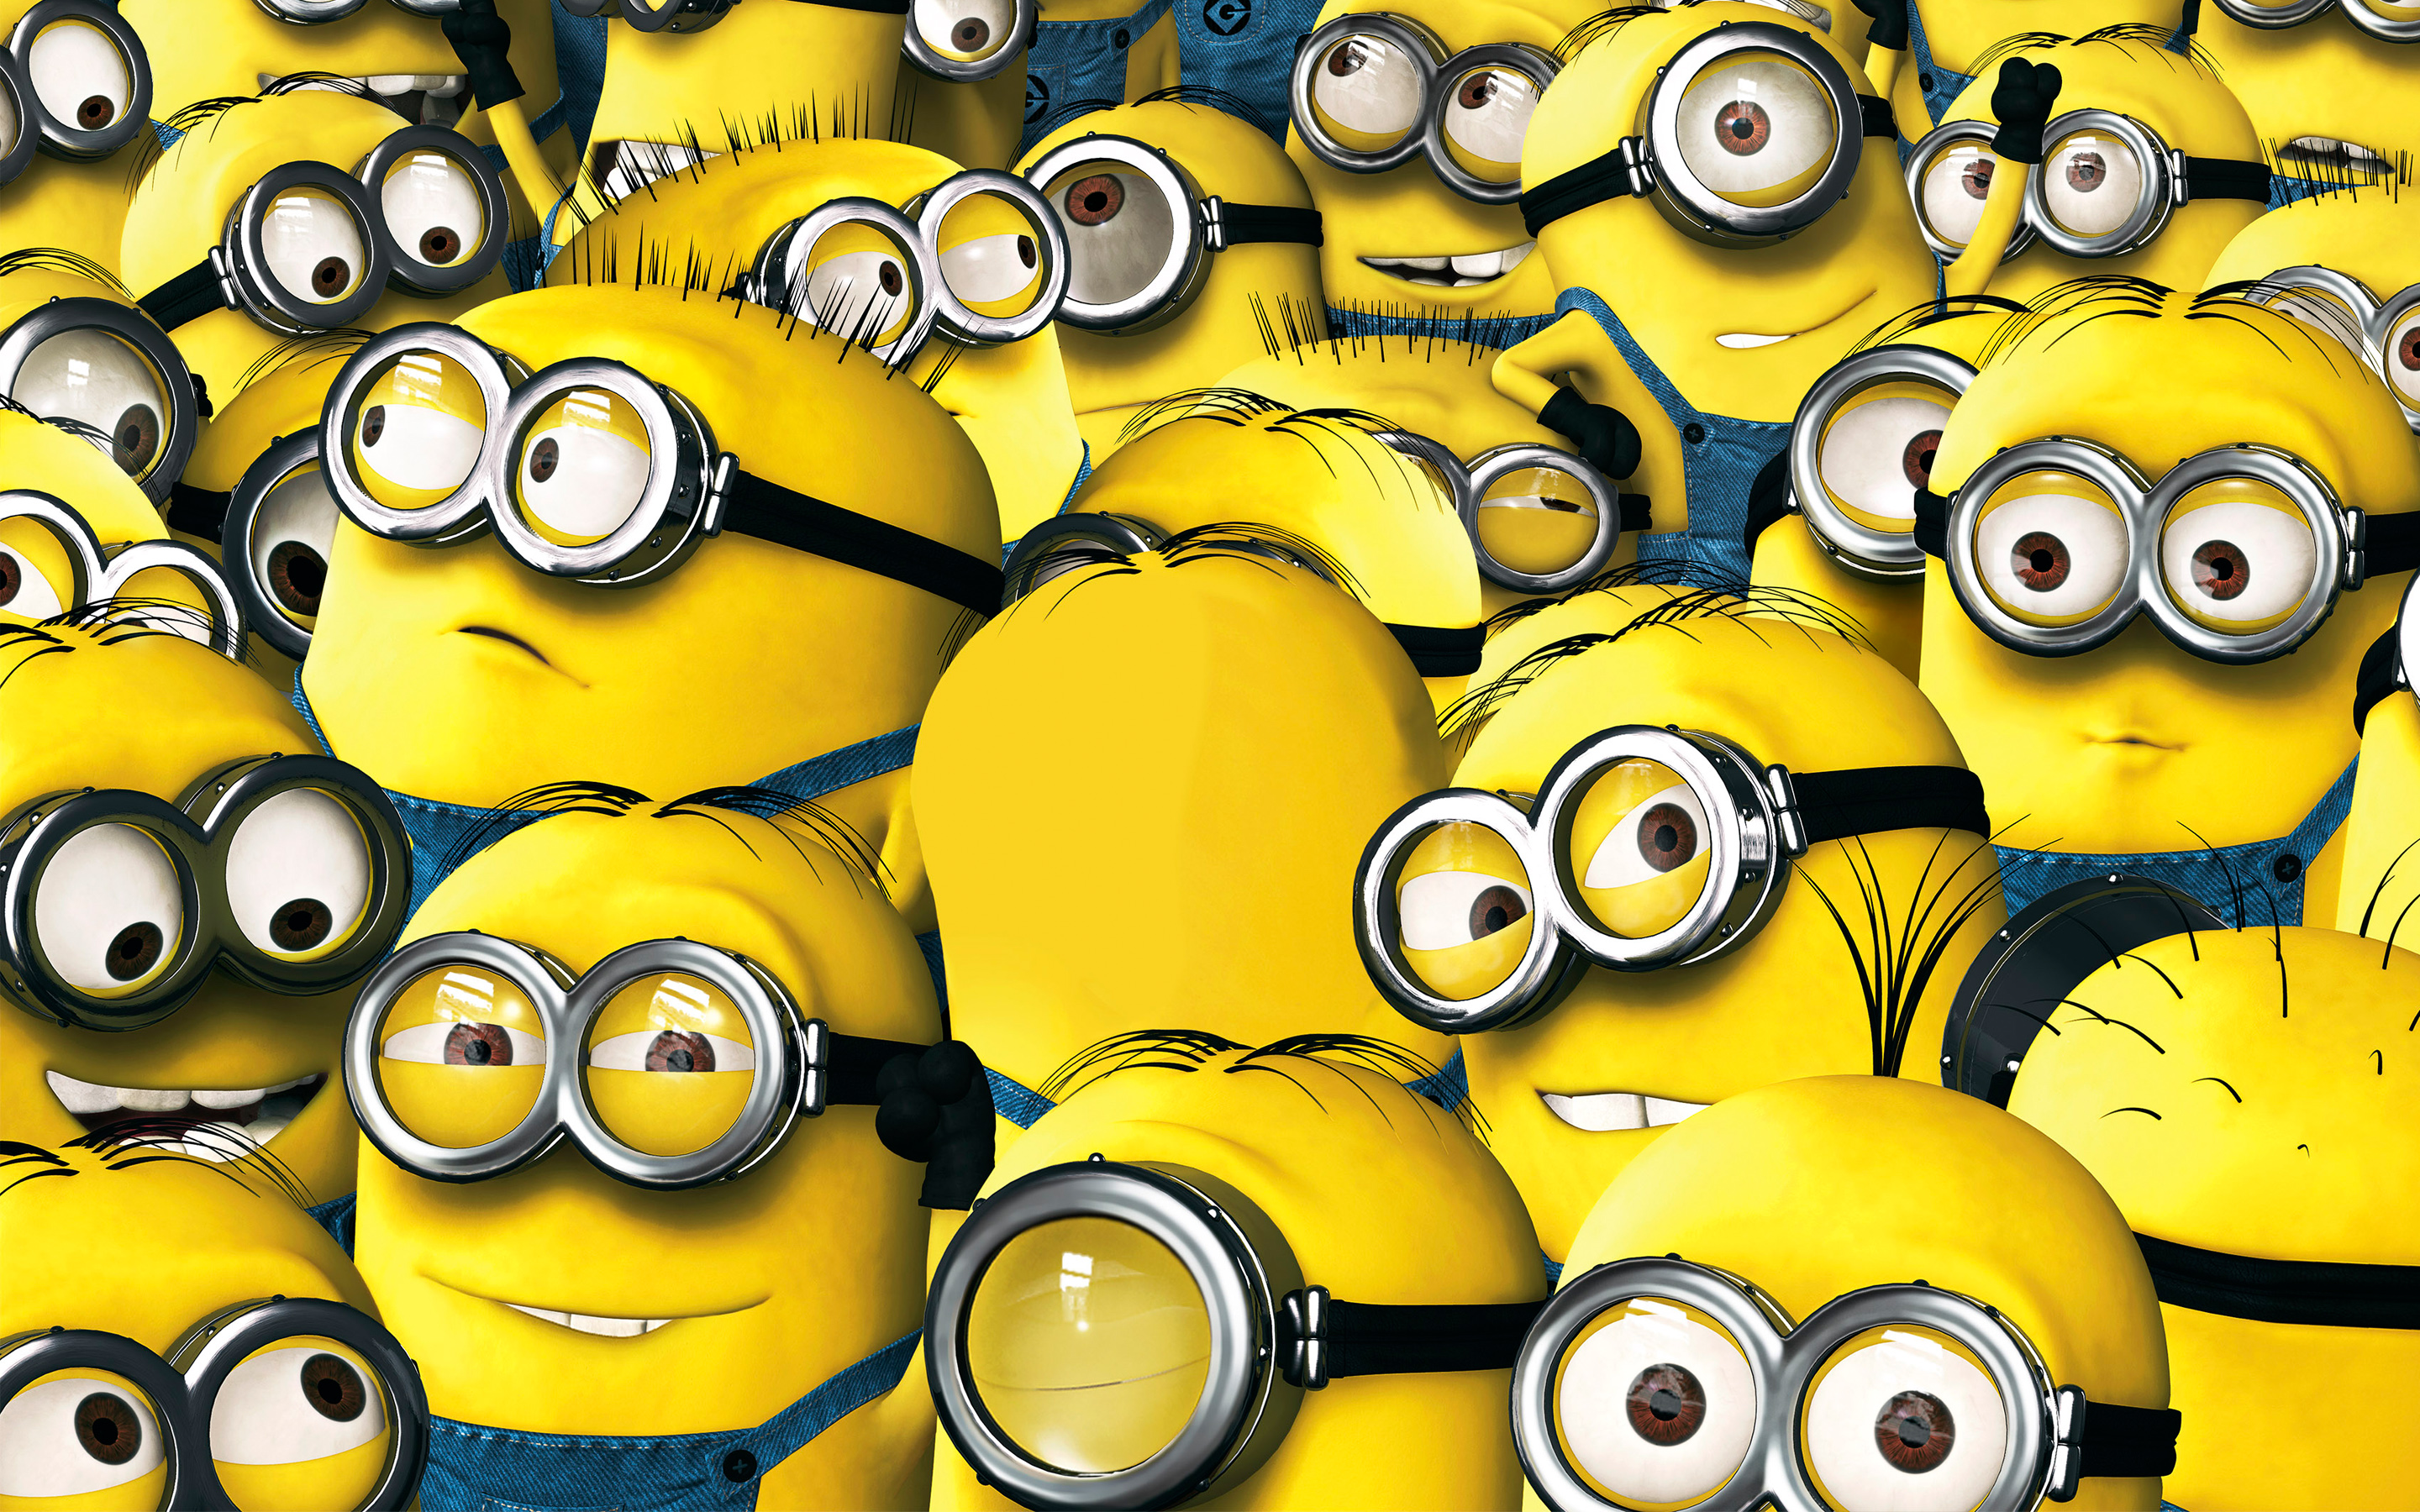 Despicable Me Minion Wallpaper Amazing Wallpaper Hd Library